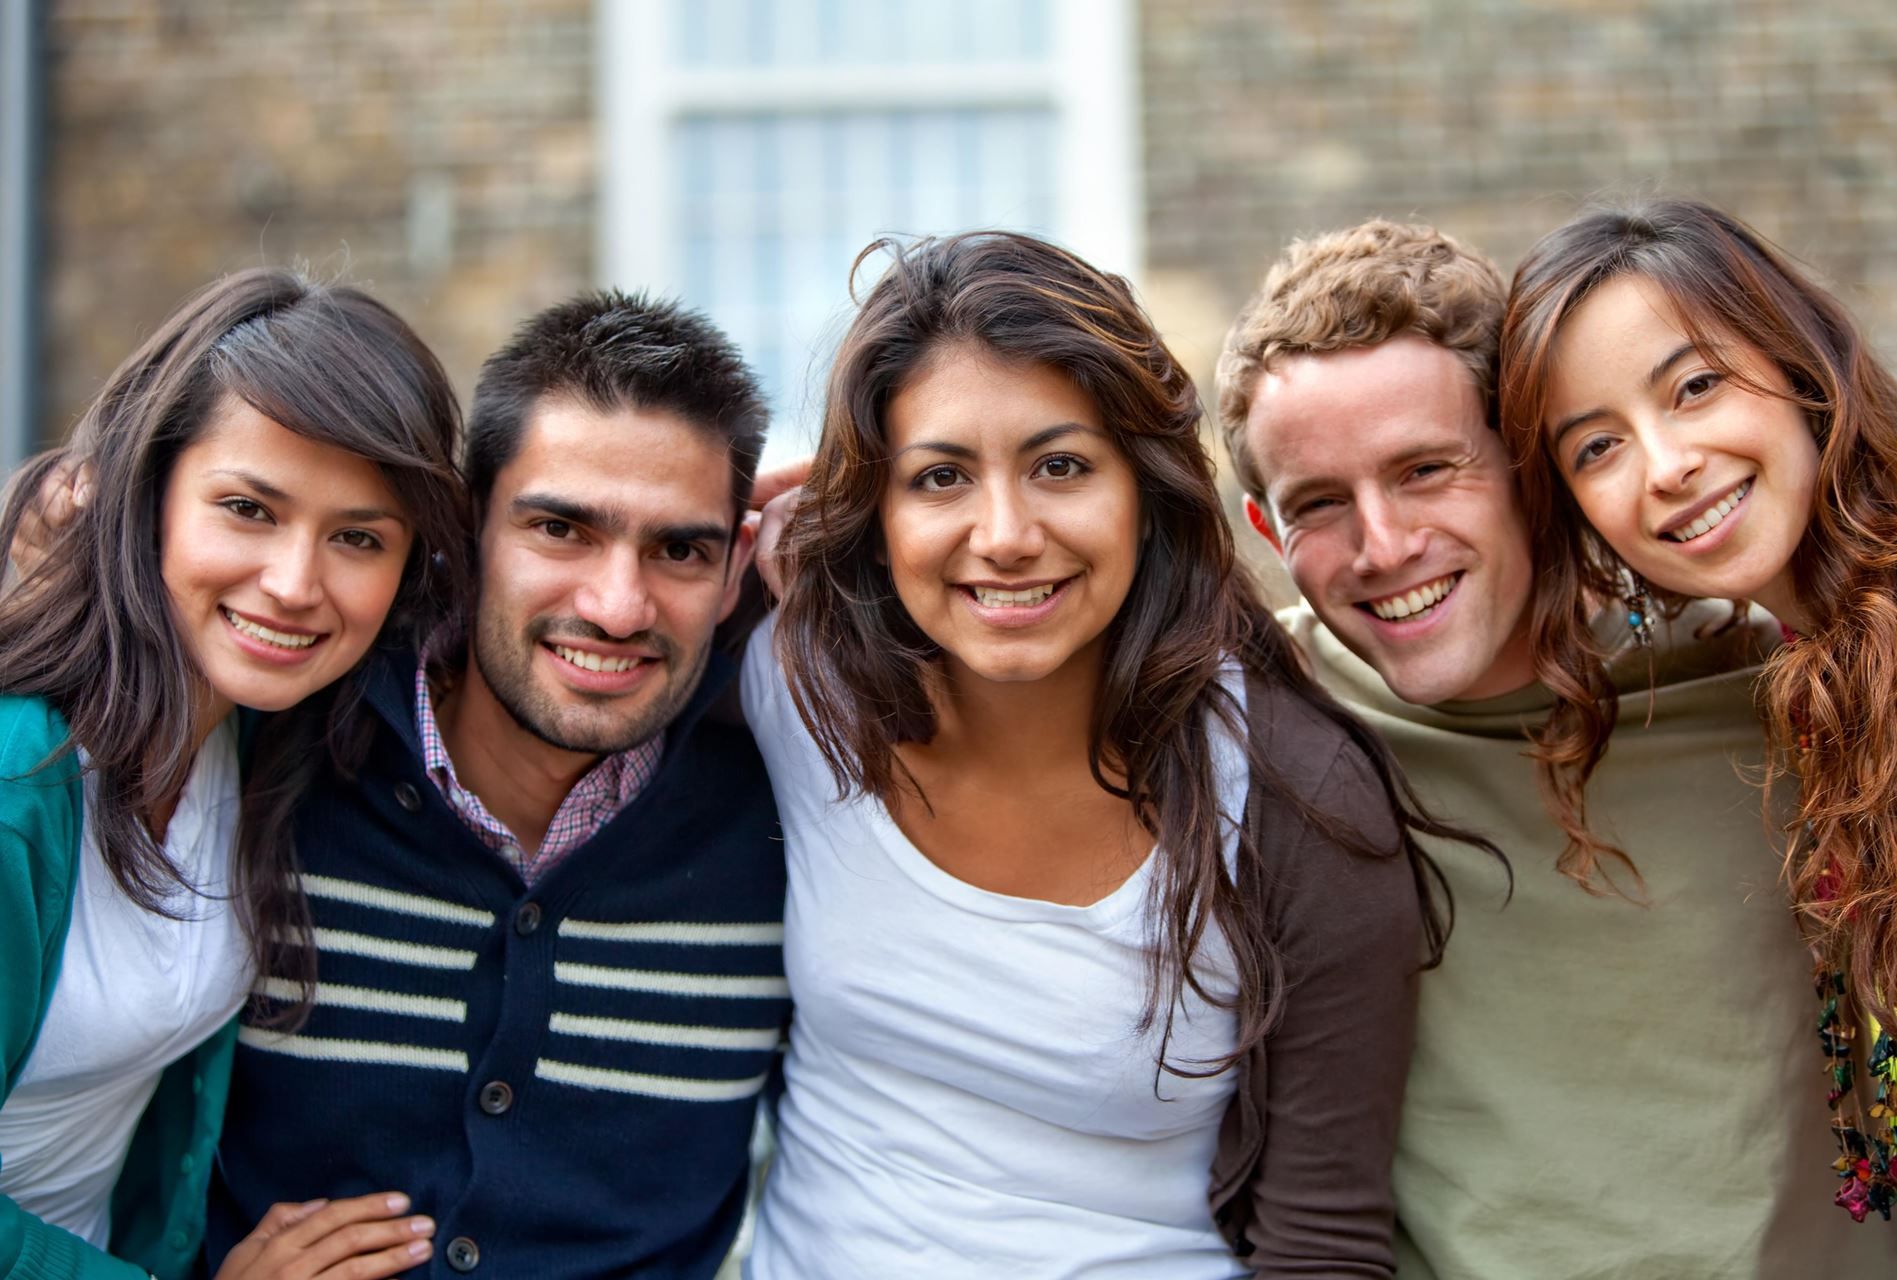 group of young people with their arms linked, smiling